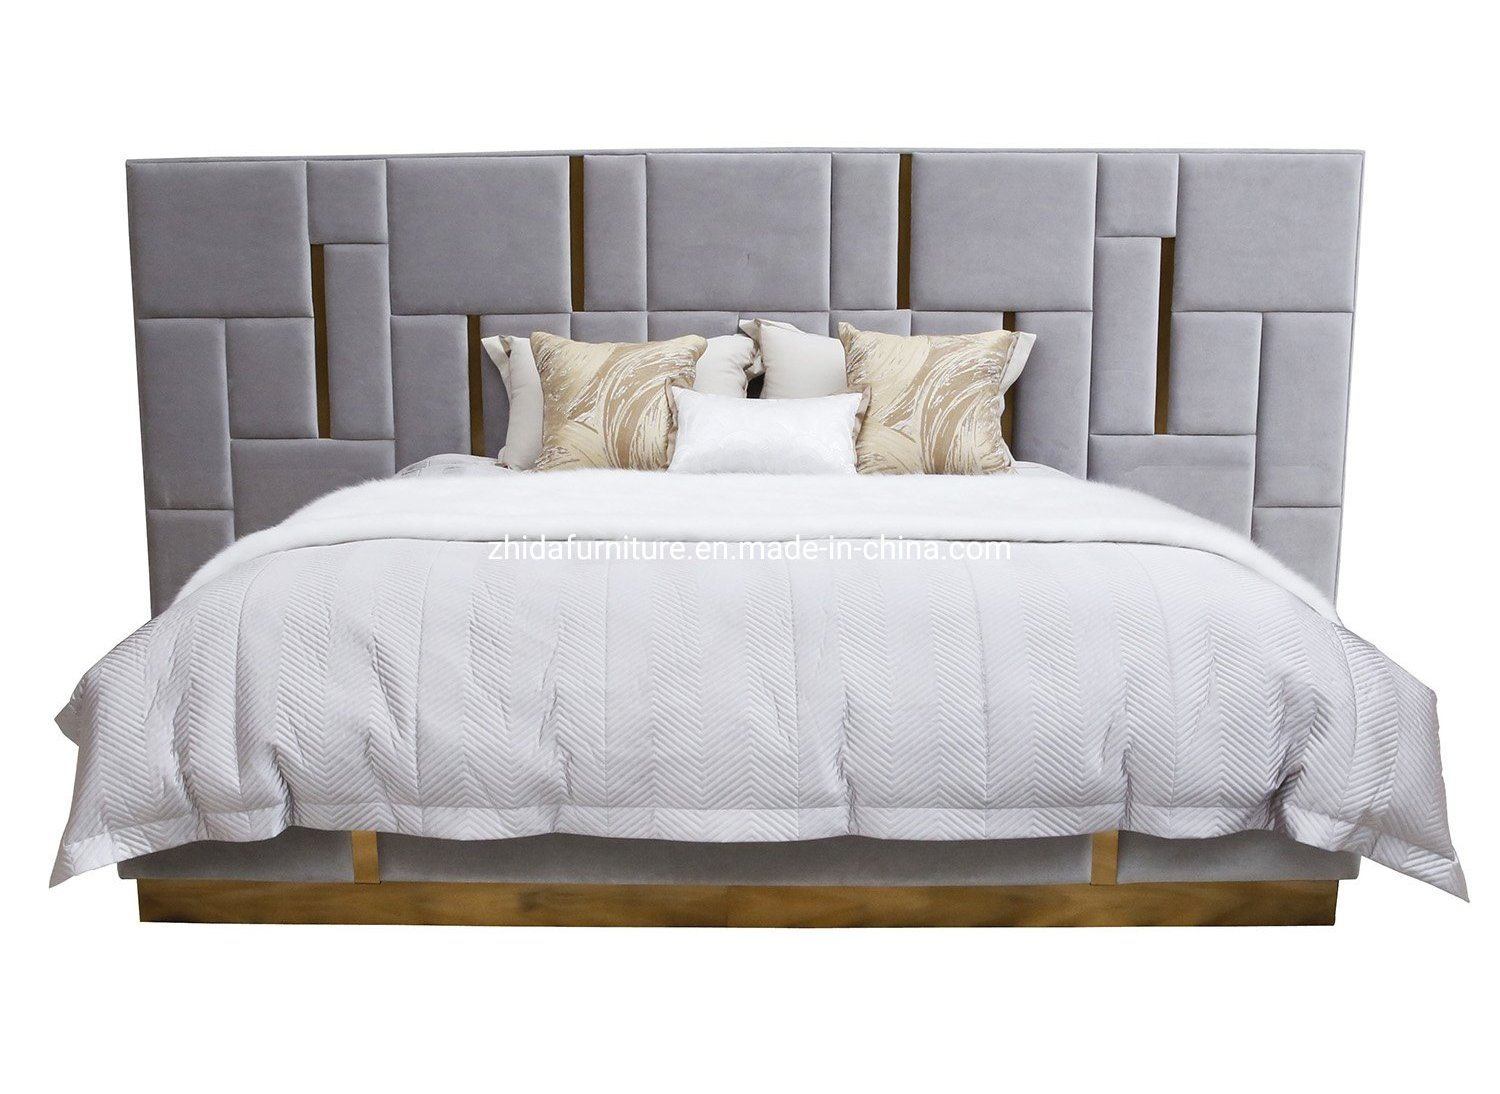 China Luxury Modern Style Bedroom Set For Home Use China Bedroom